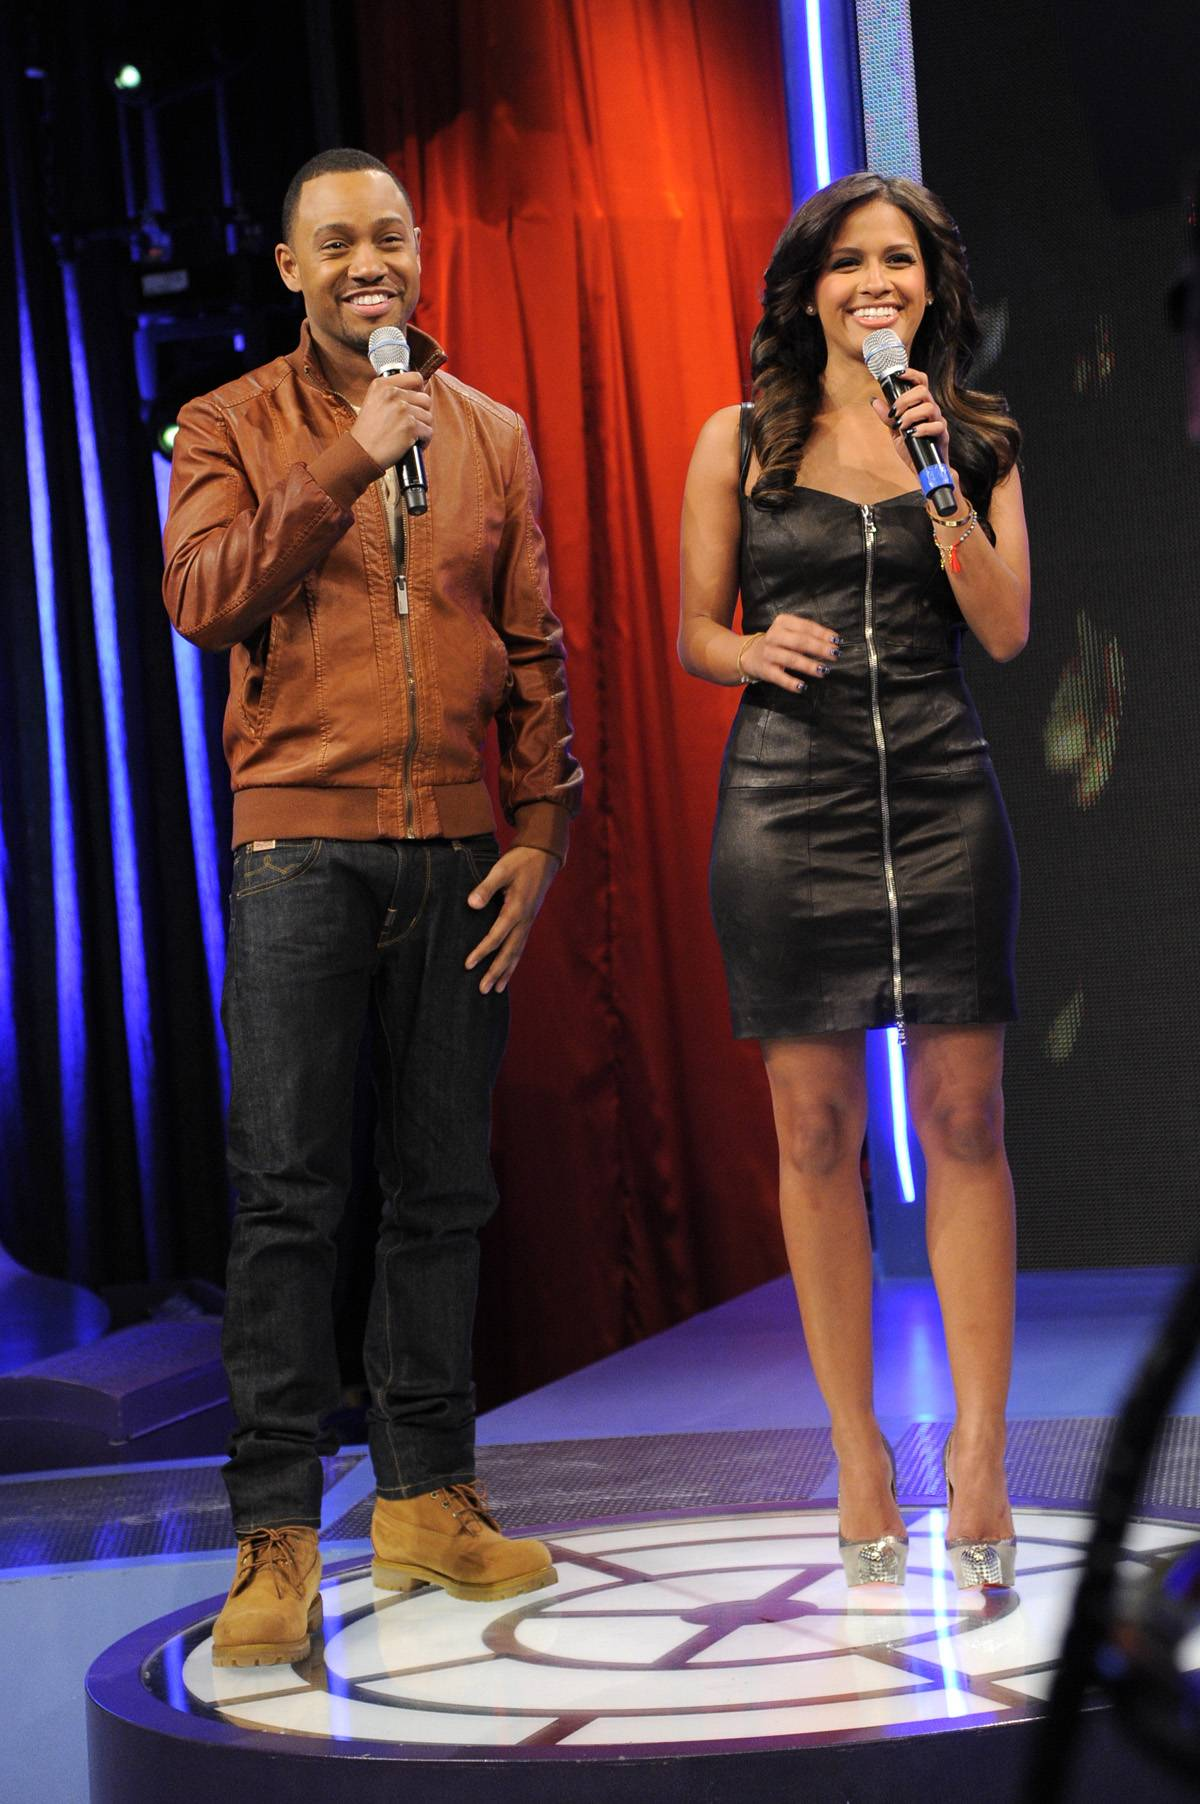 Welcome Back - Terrence J and Rocsi Diaz at 106 & Park, January 3, 2012. (Photo: John Ricard / BET)